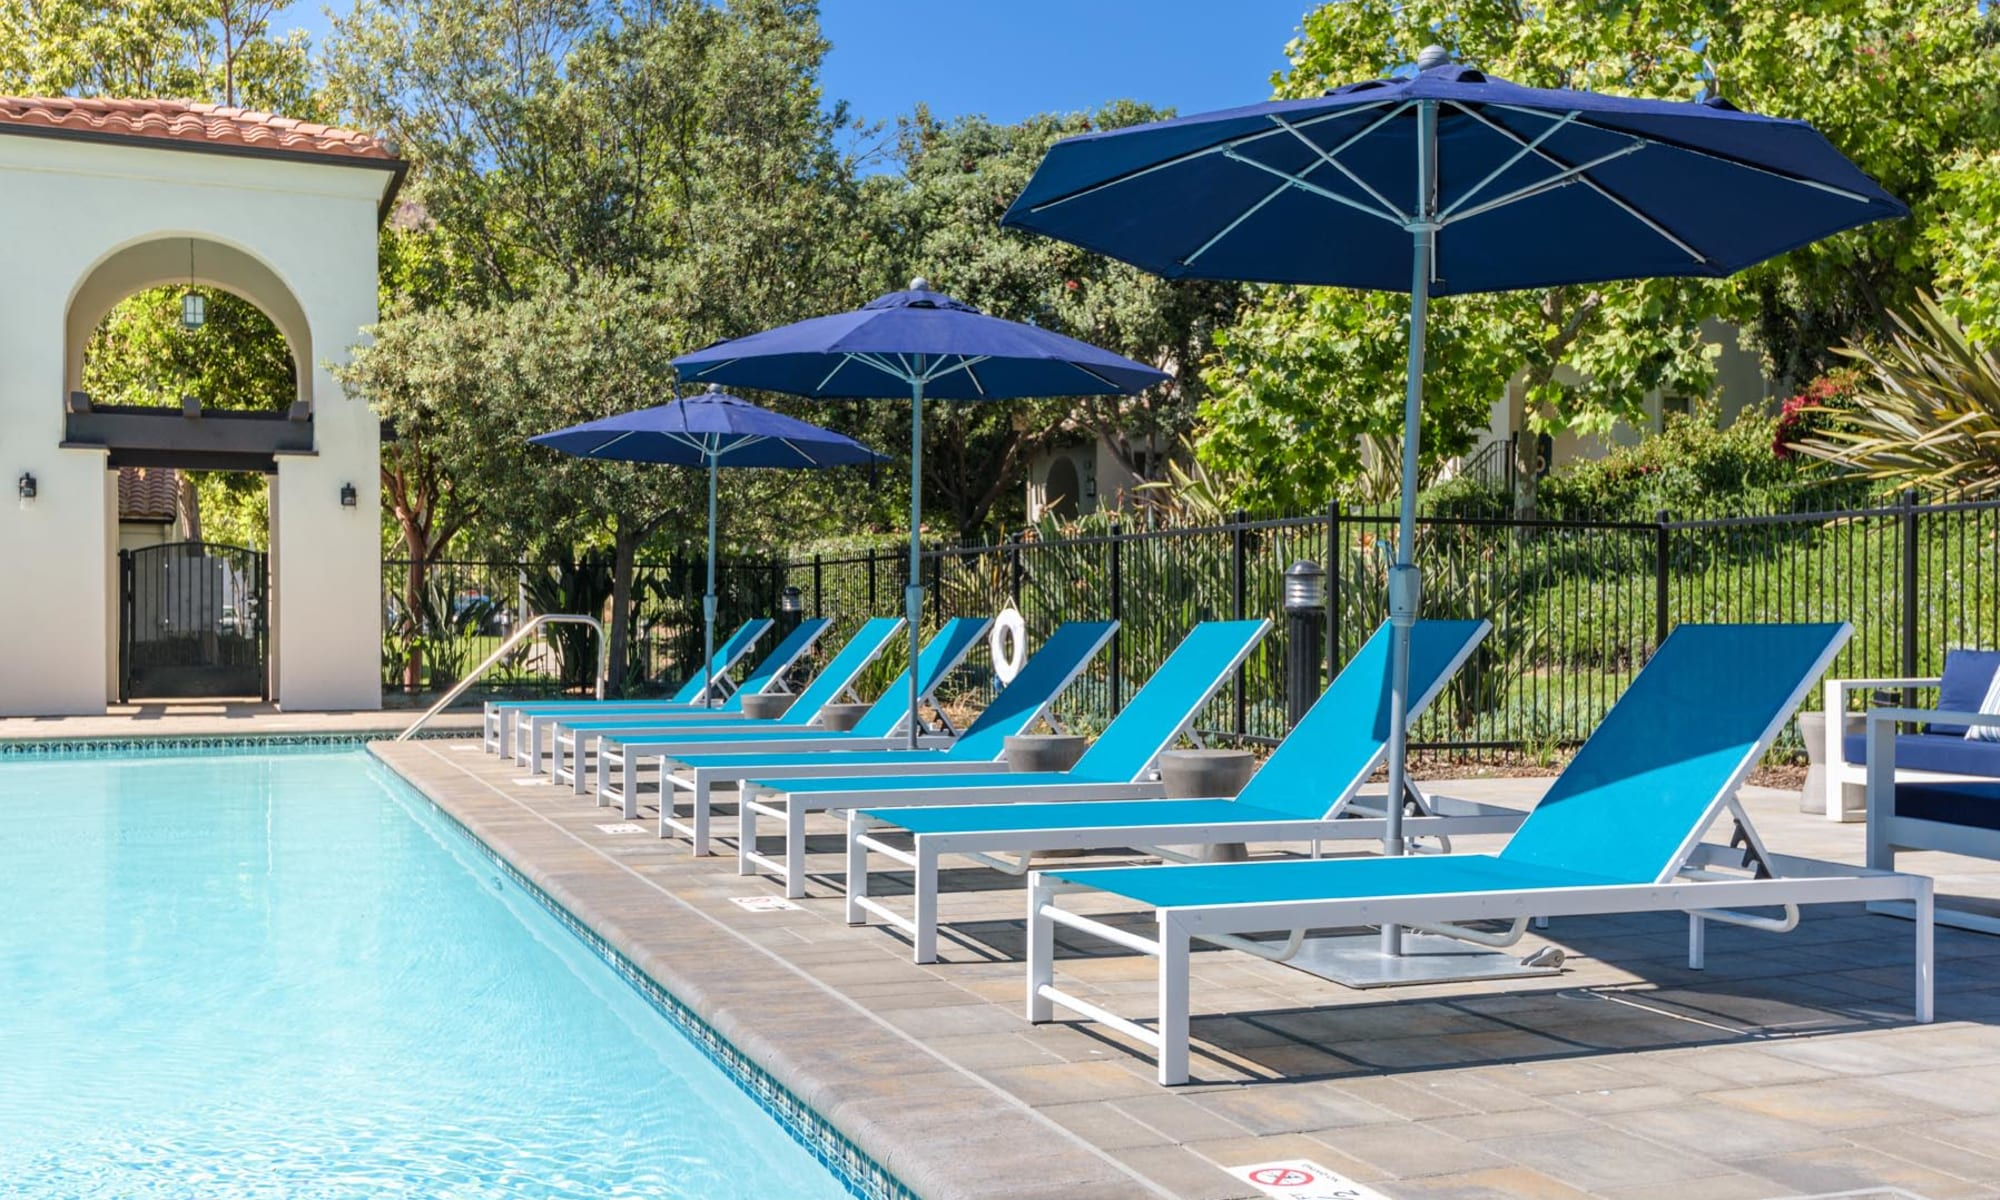 Chaise lounge chairs around the pool at Mission Hills in Camarillo, California